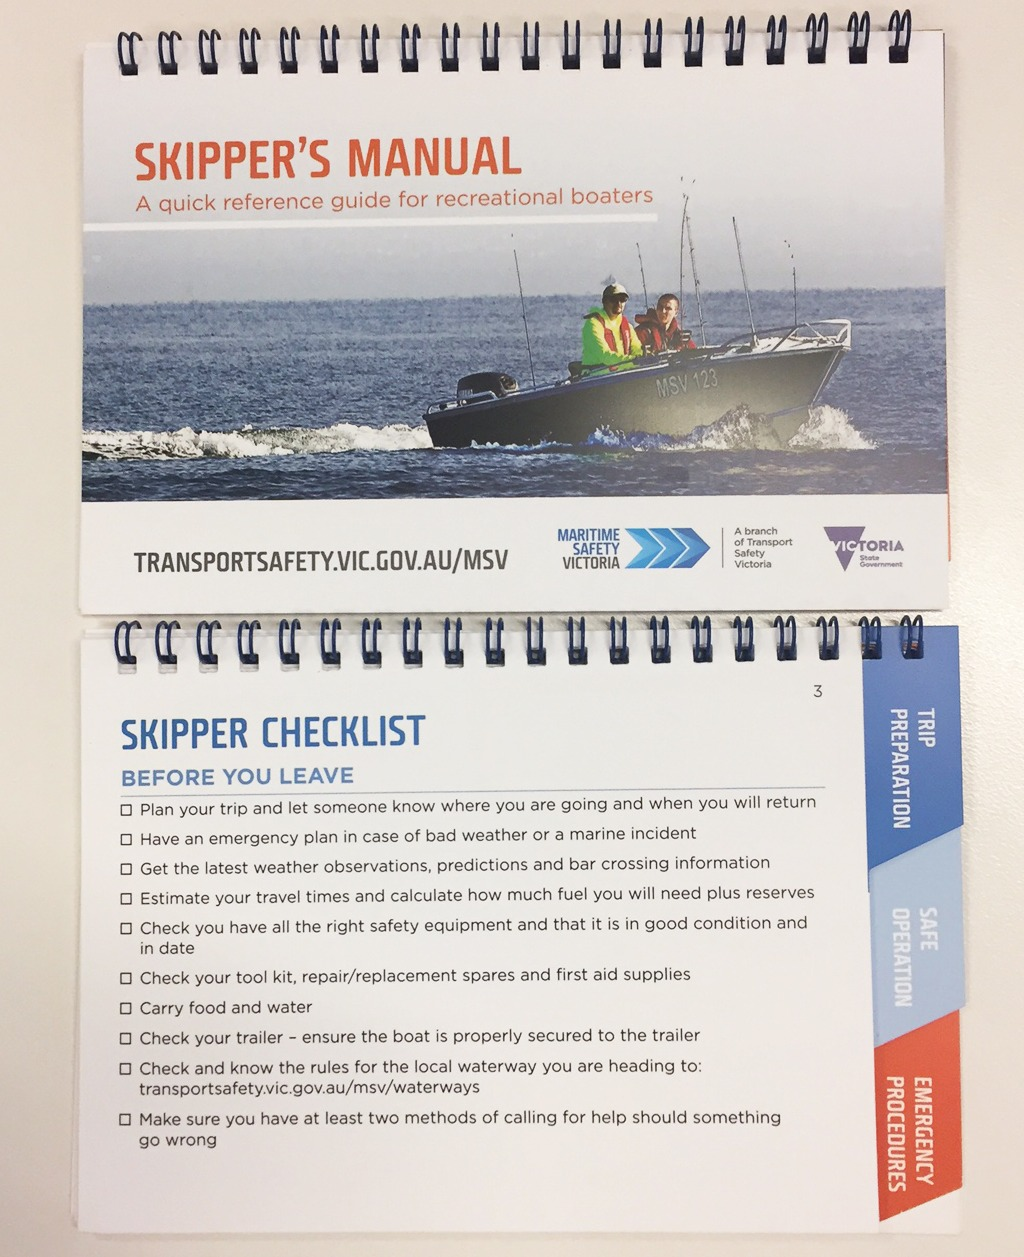 An open Skipper's Manual